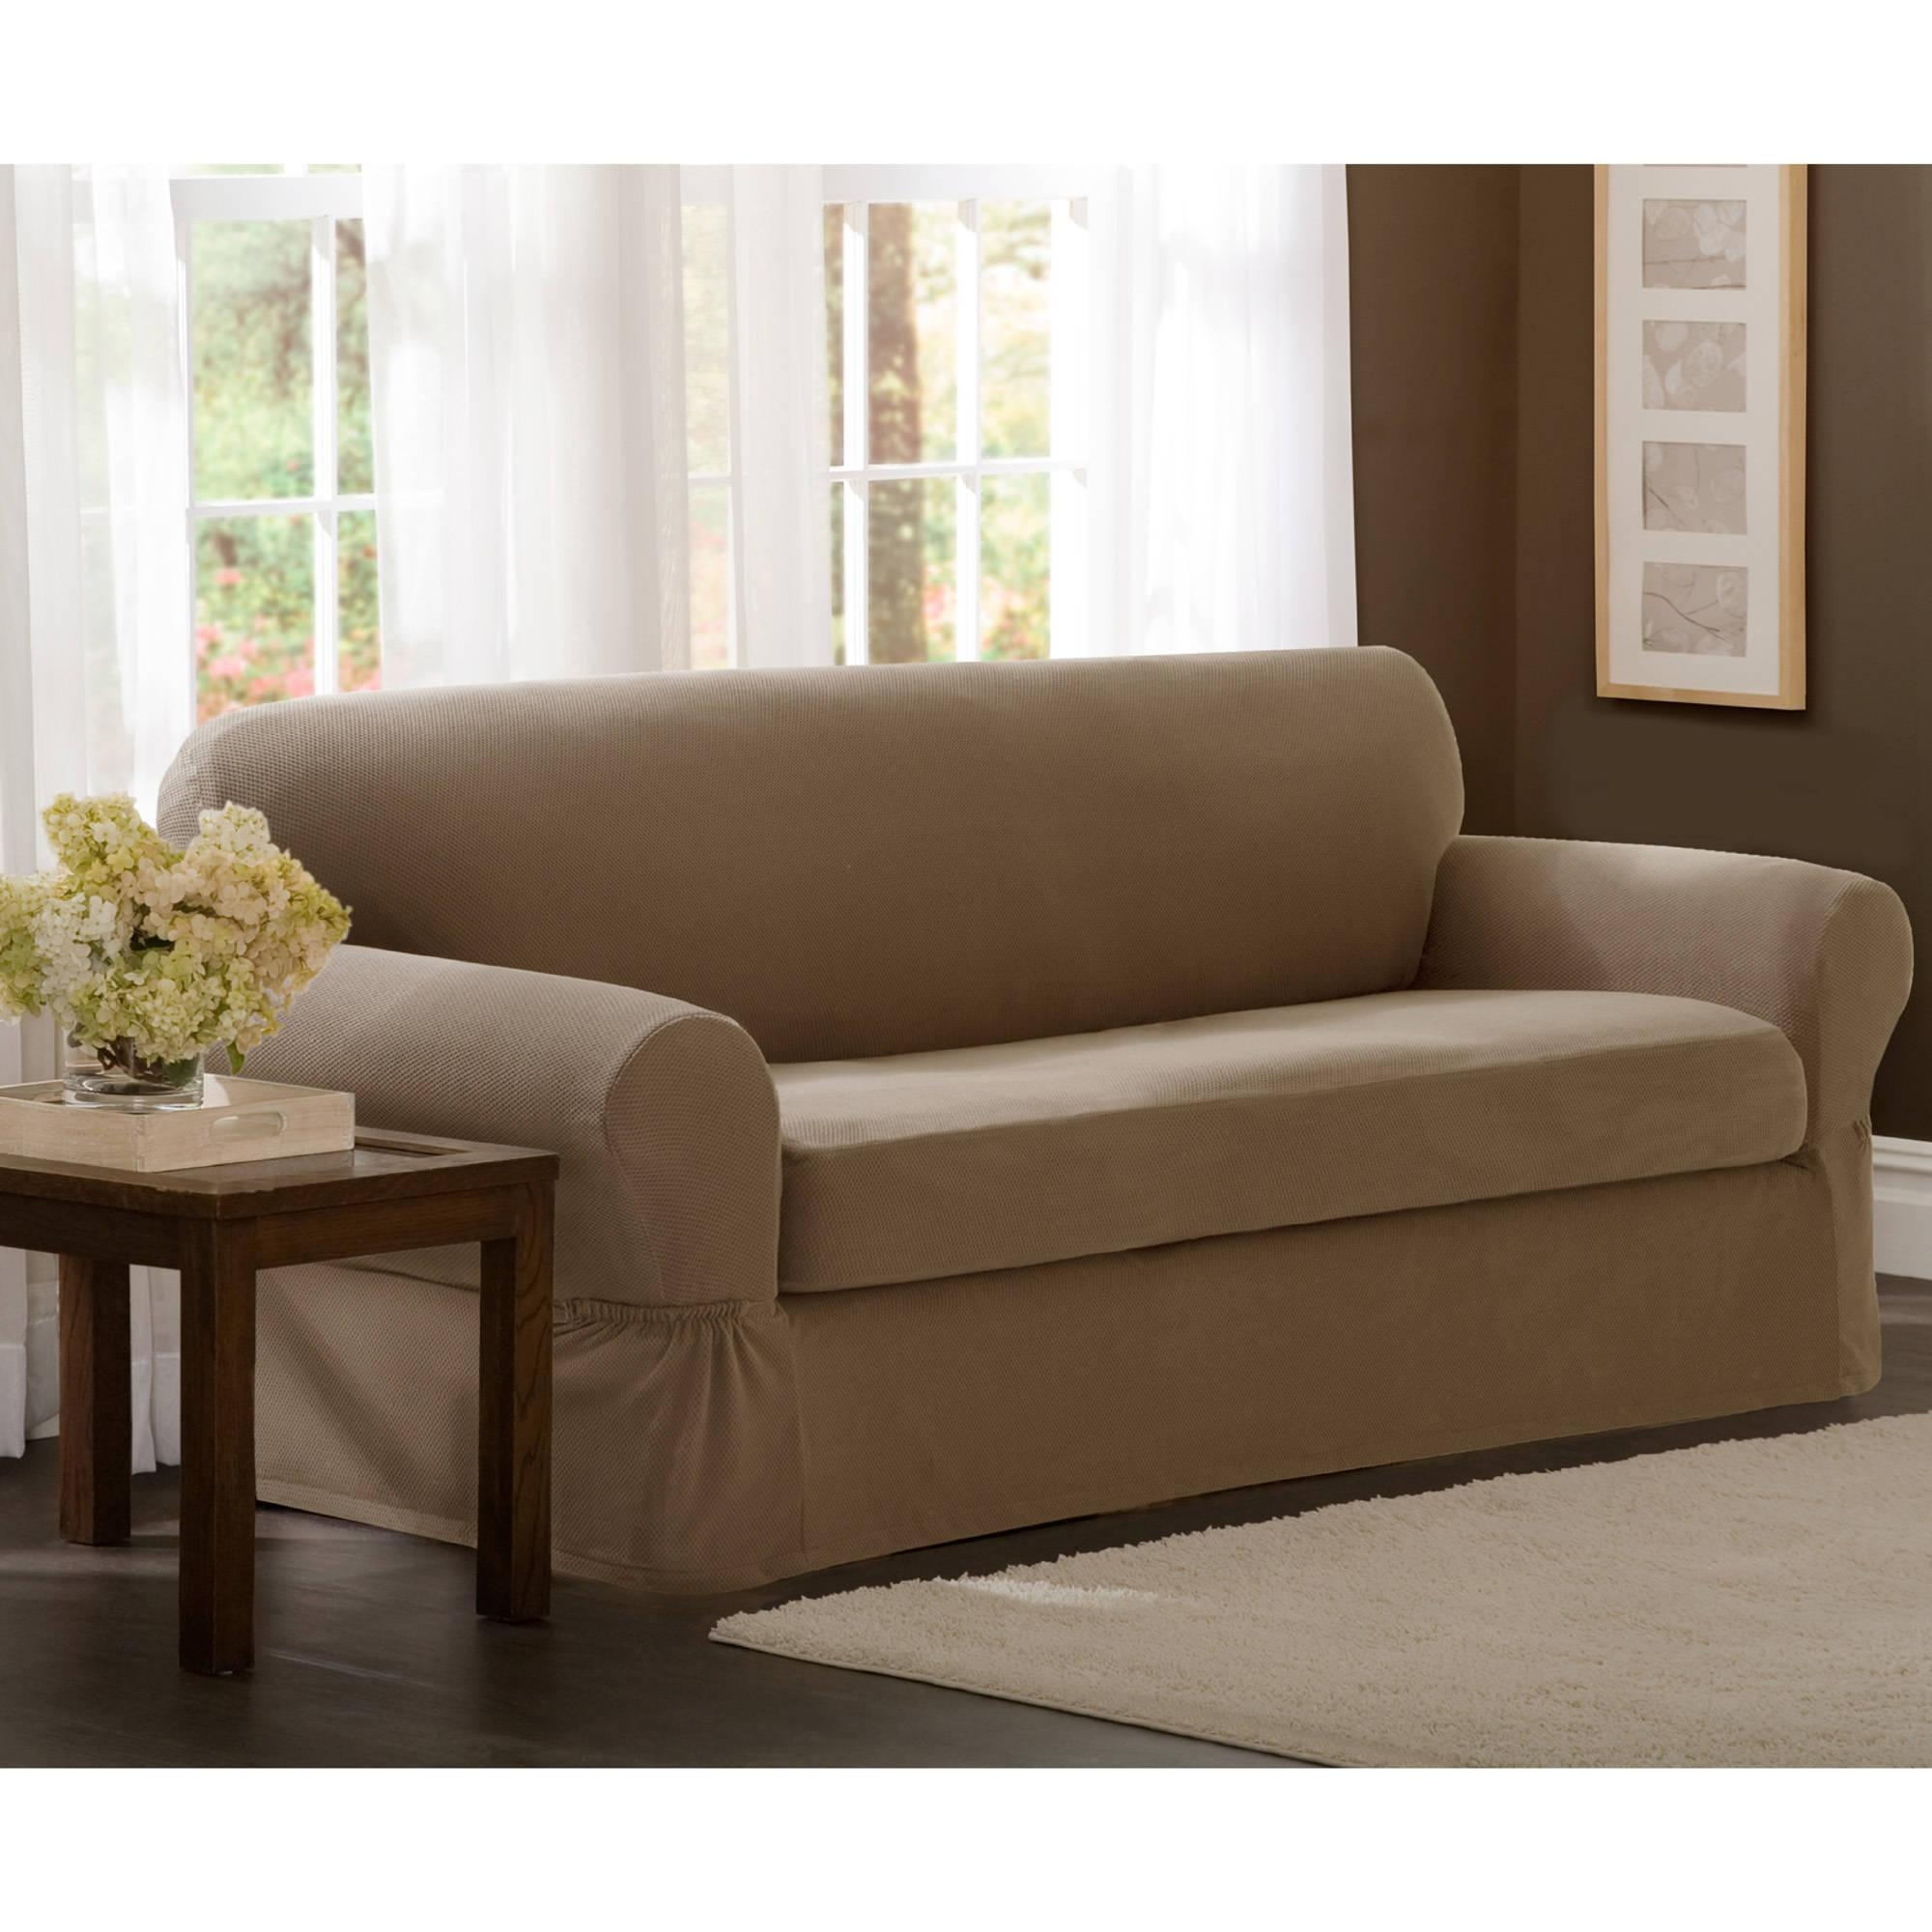 Maytex Stretch 2 Piece Sofa Slipcover – Walmart With Canvas Sofas Covers (Image 14 of 20)